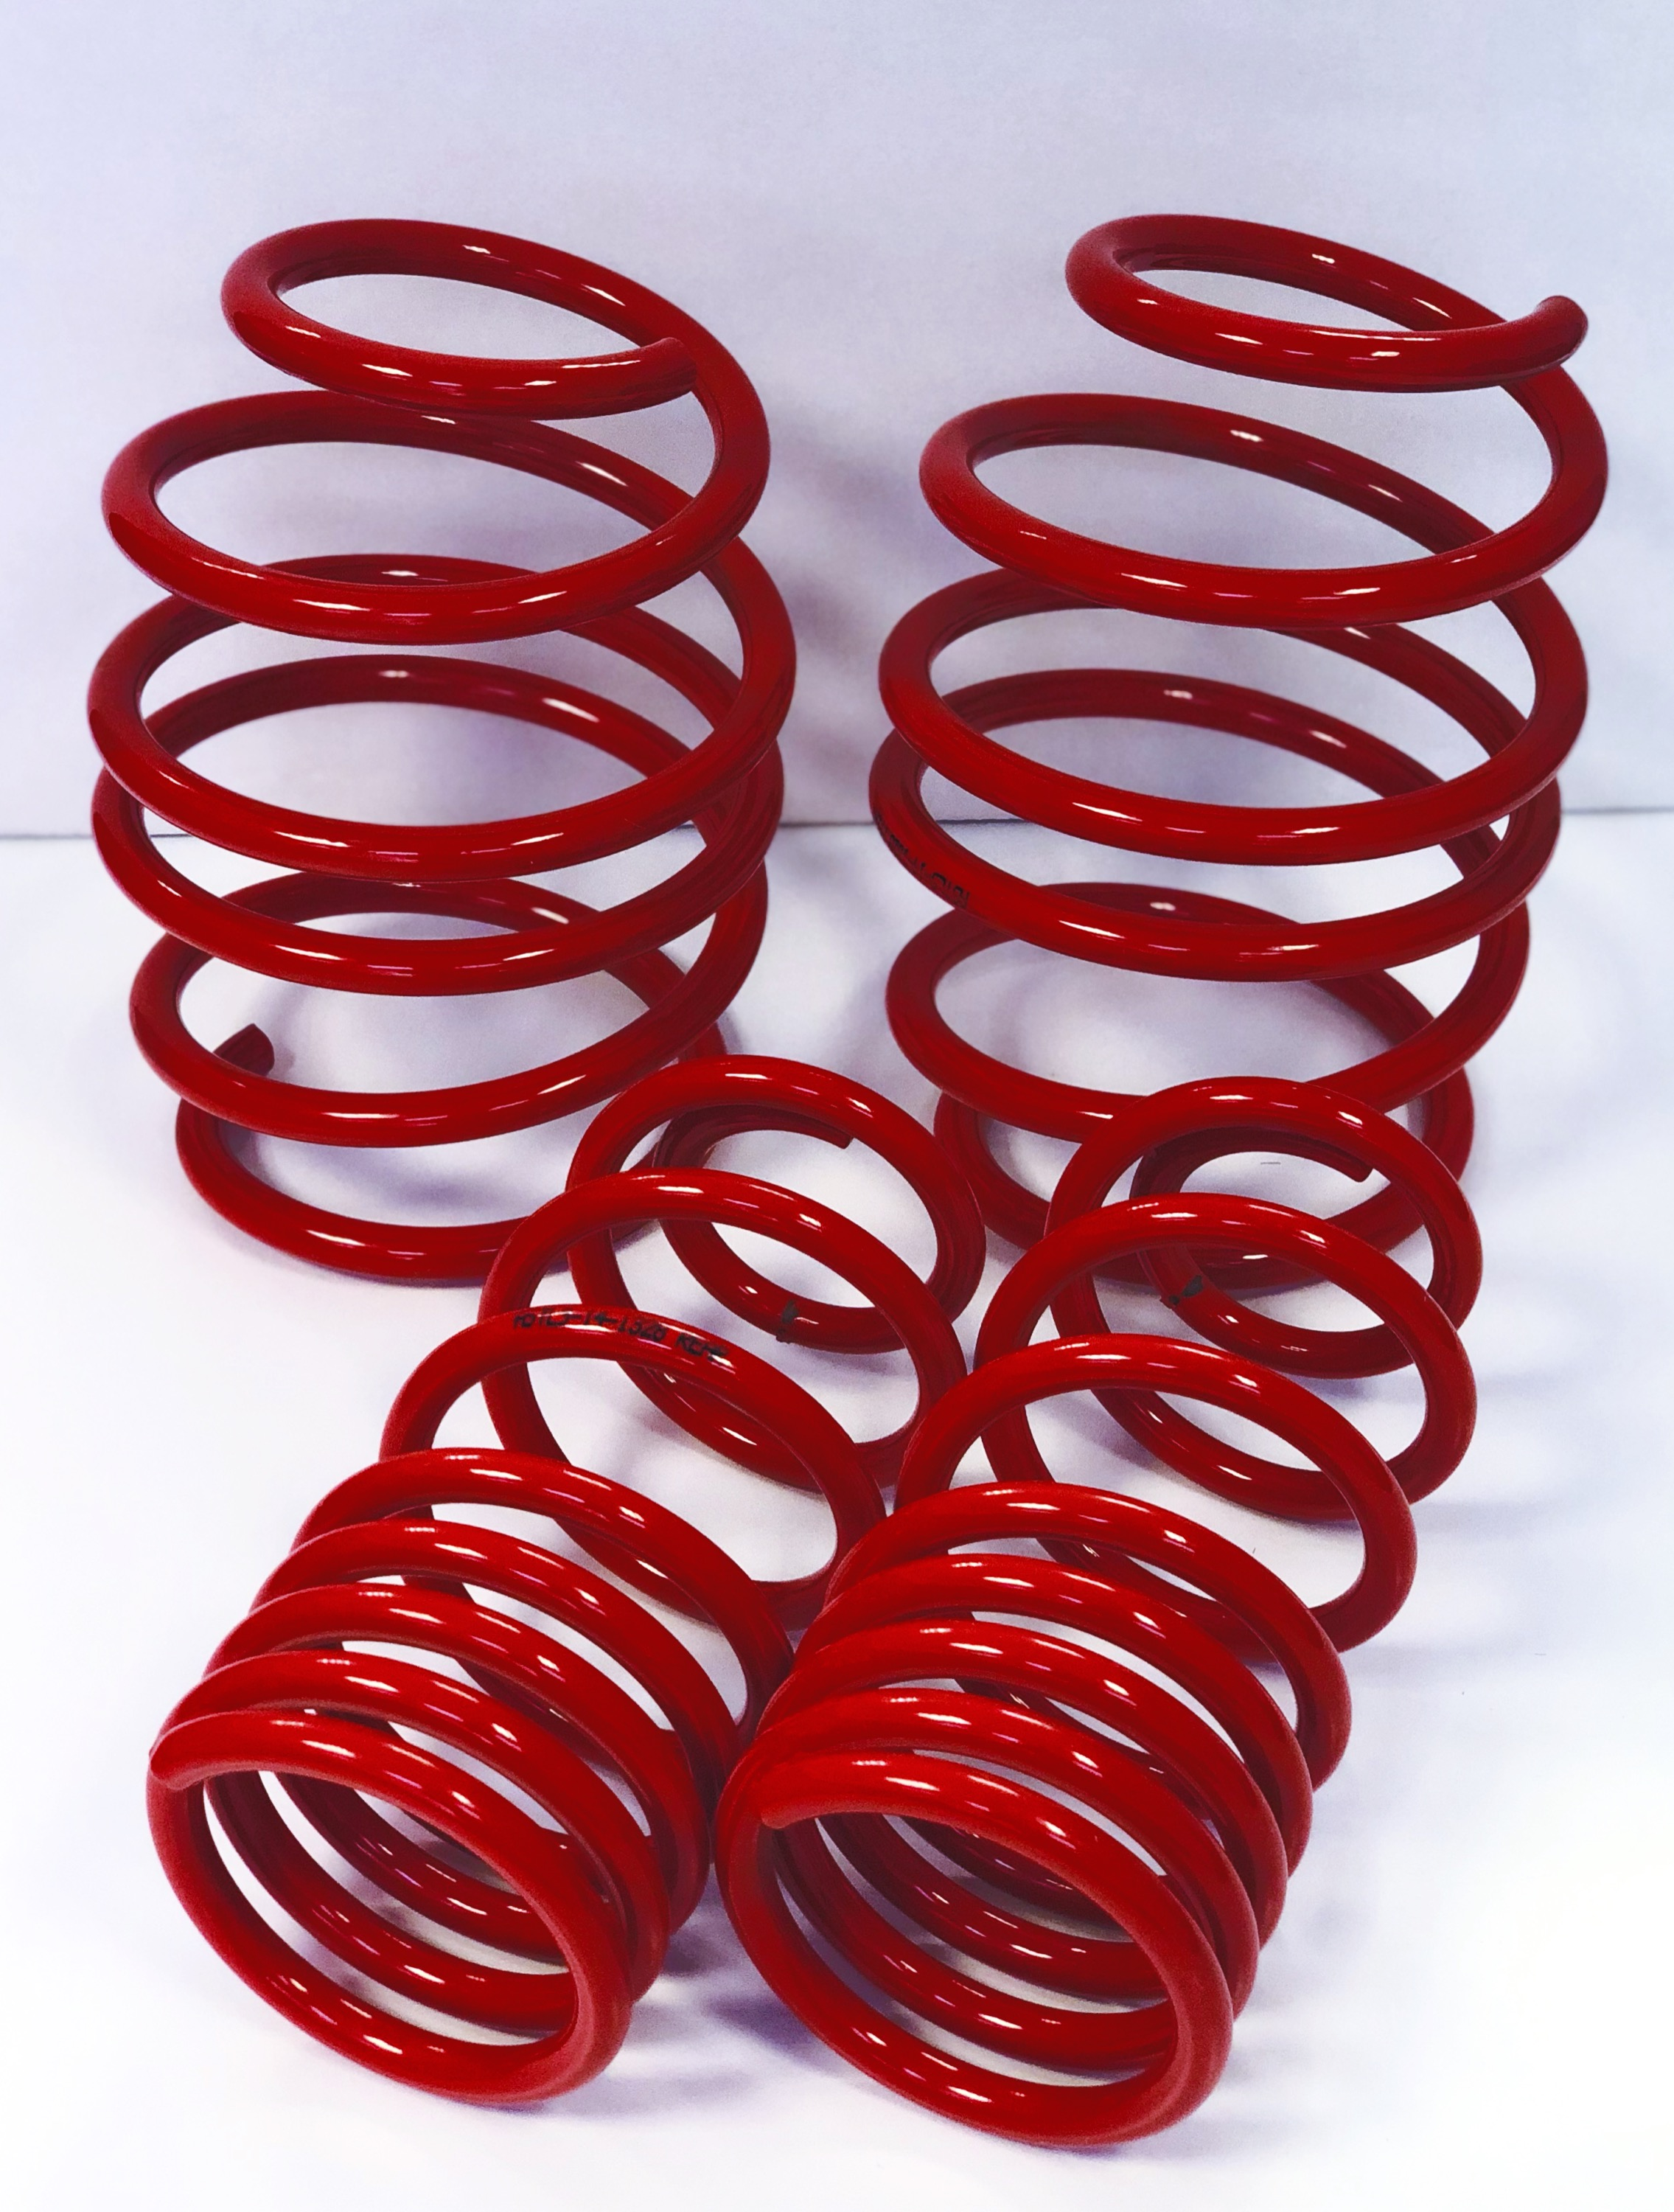 Vauxhall TIGRA AST Suspension Lowering Springs 30MM